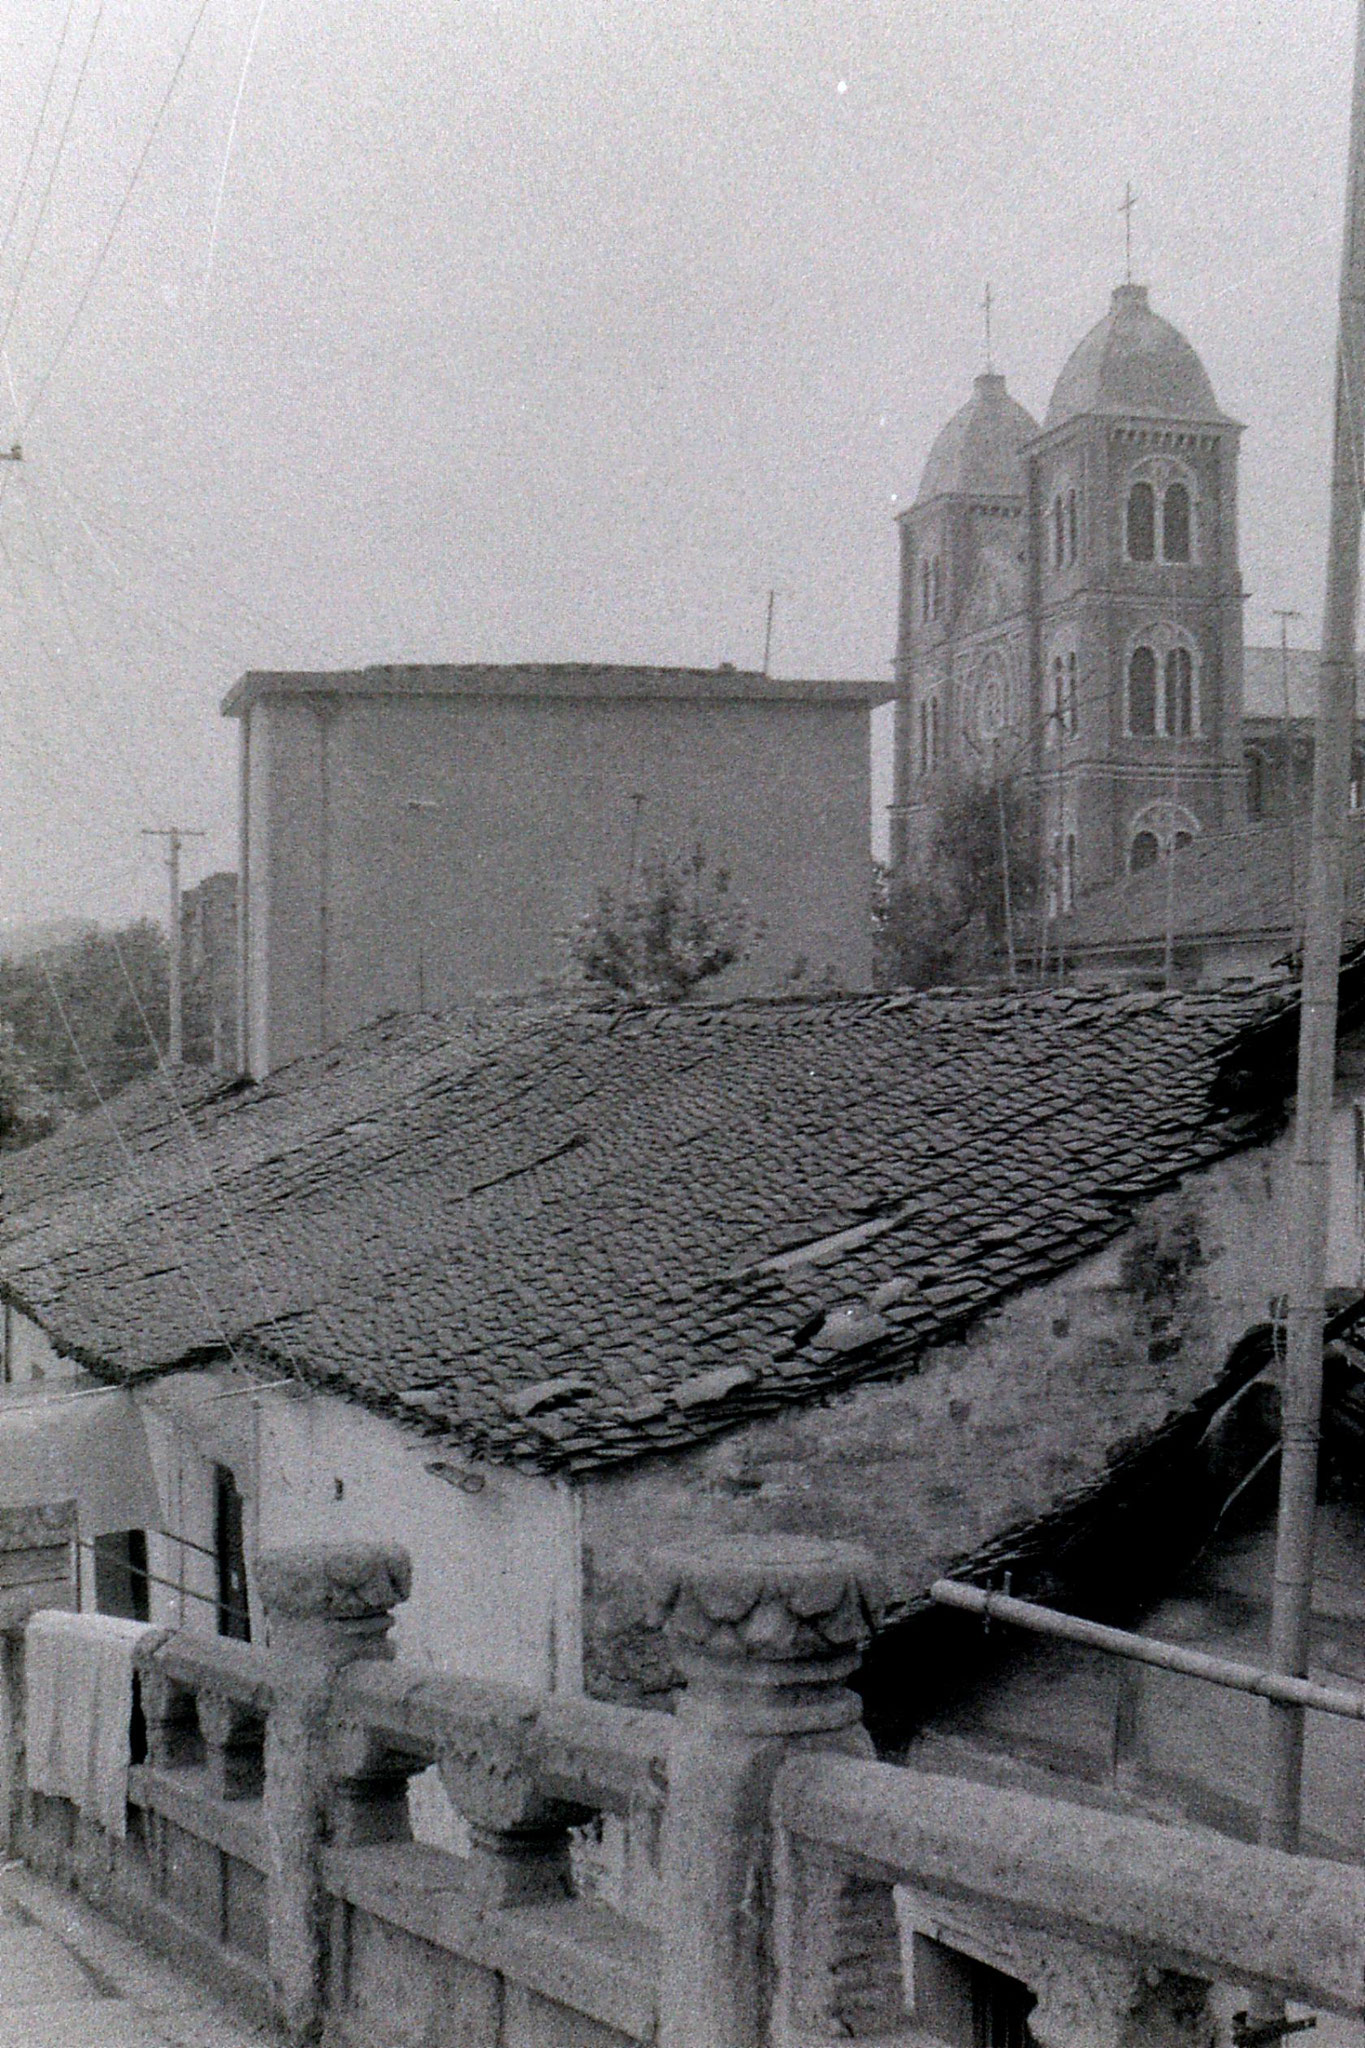 26/6/1989: 4: Shaoxing, church near bridge used as school